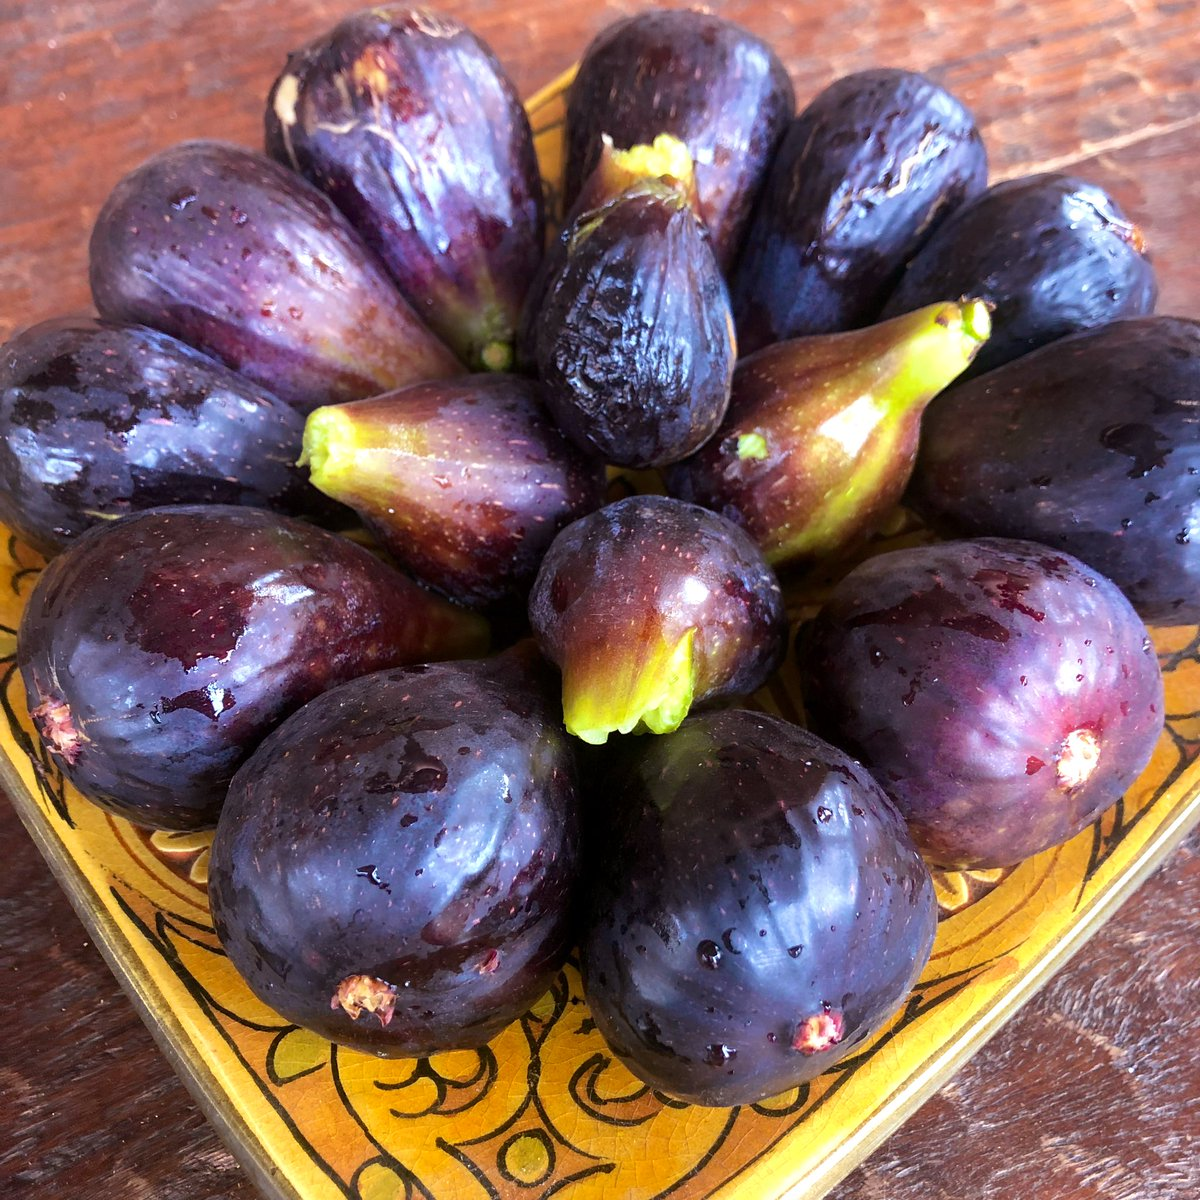 Figs from our tree 🌳 Just add wine wine and cheese 🍷🧀 😋💗#WineWednesday